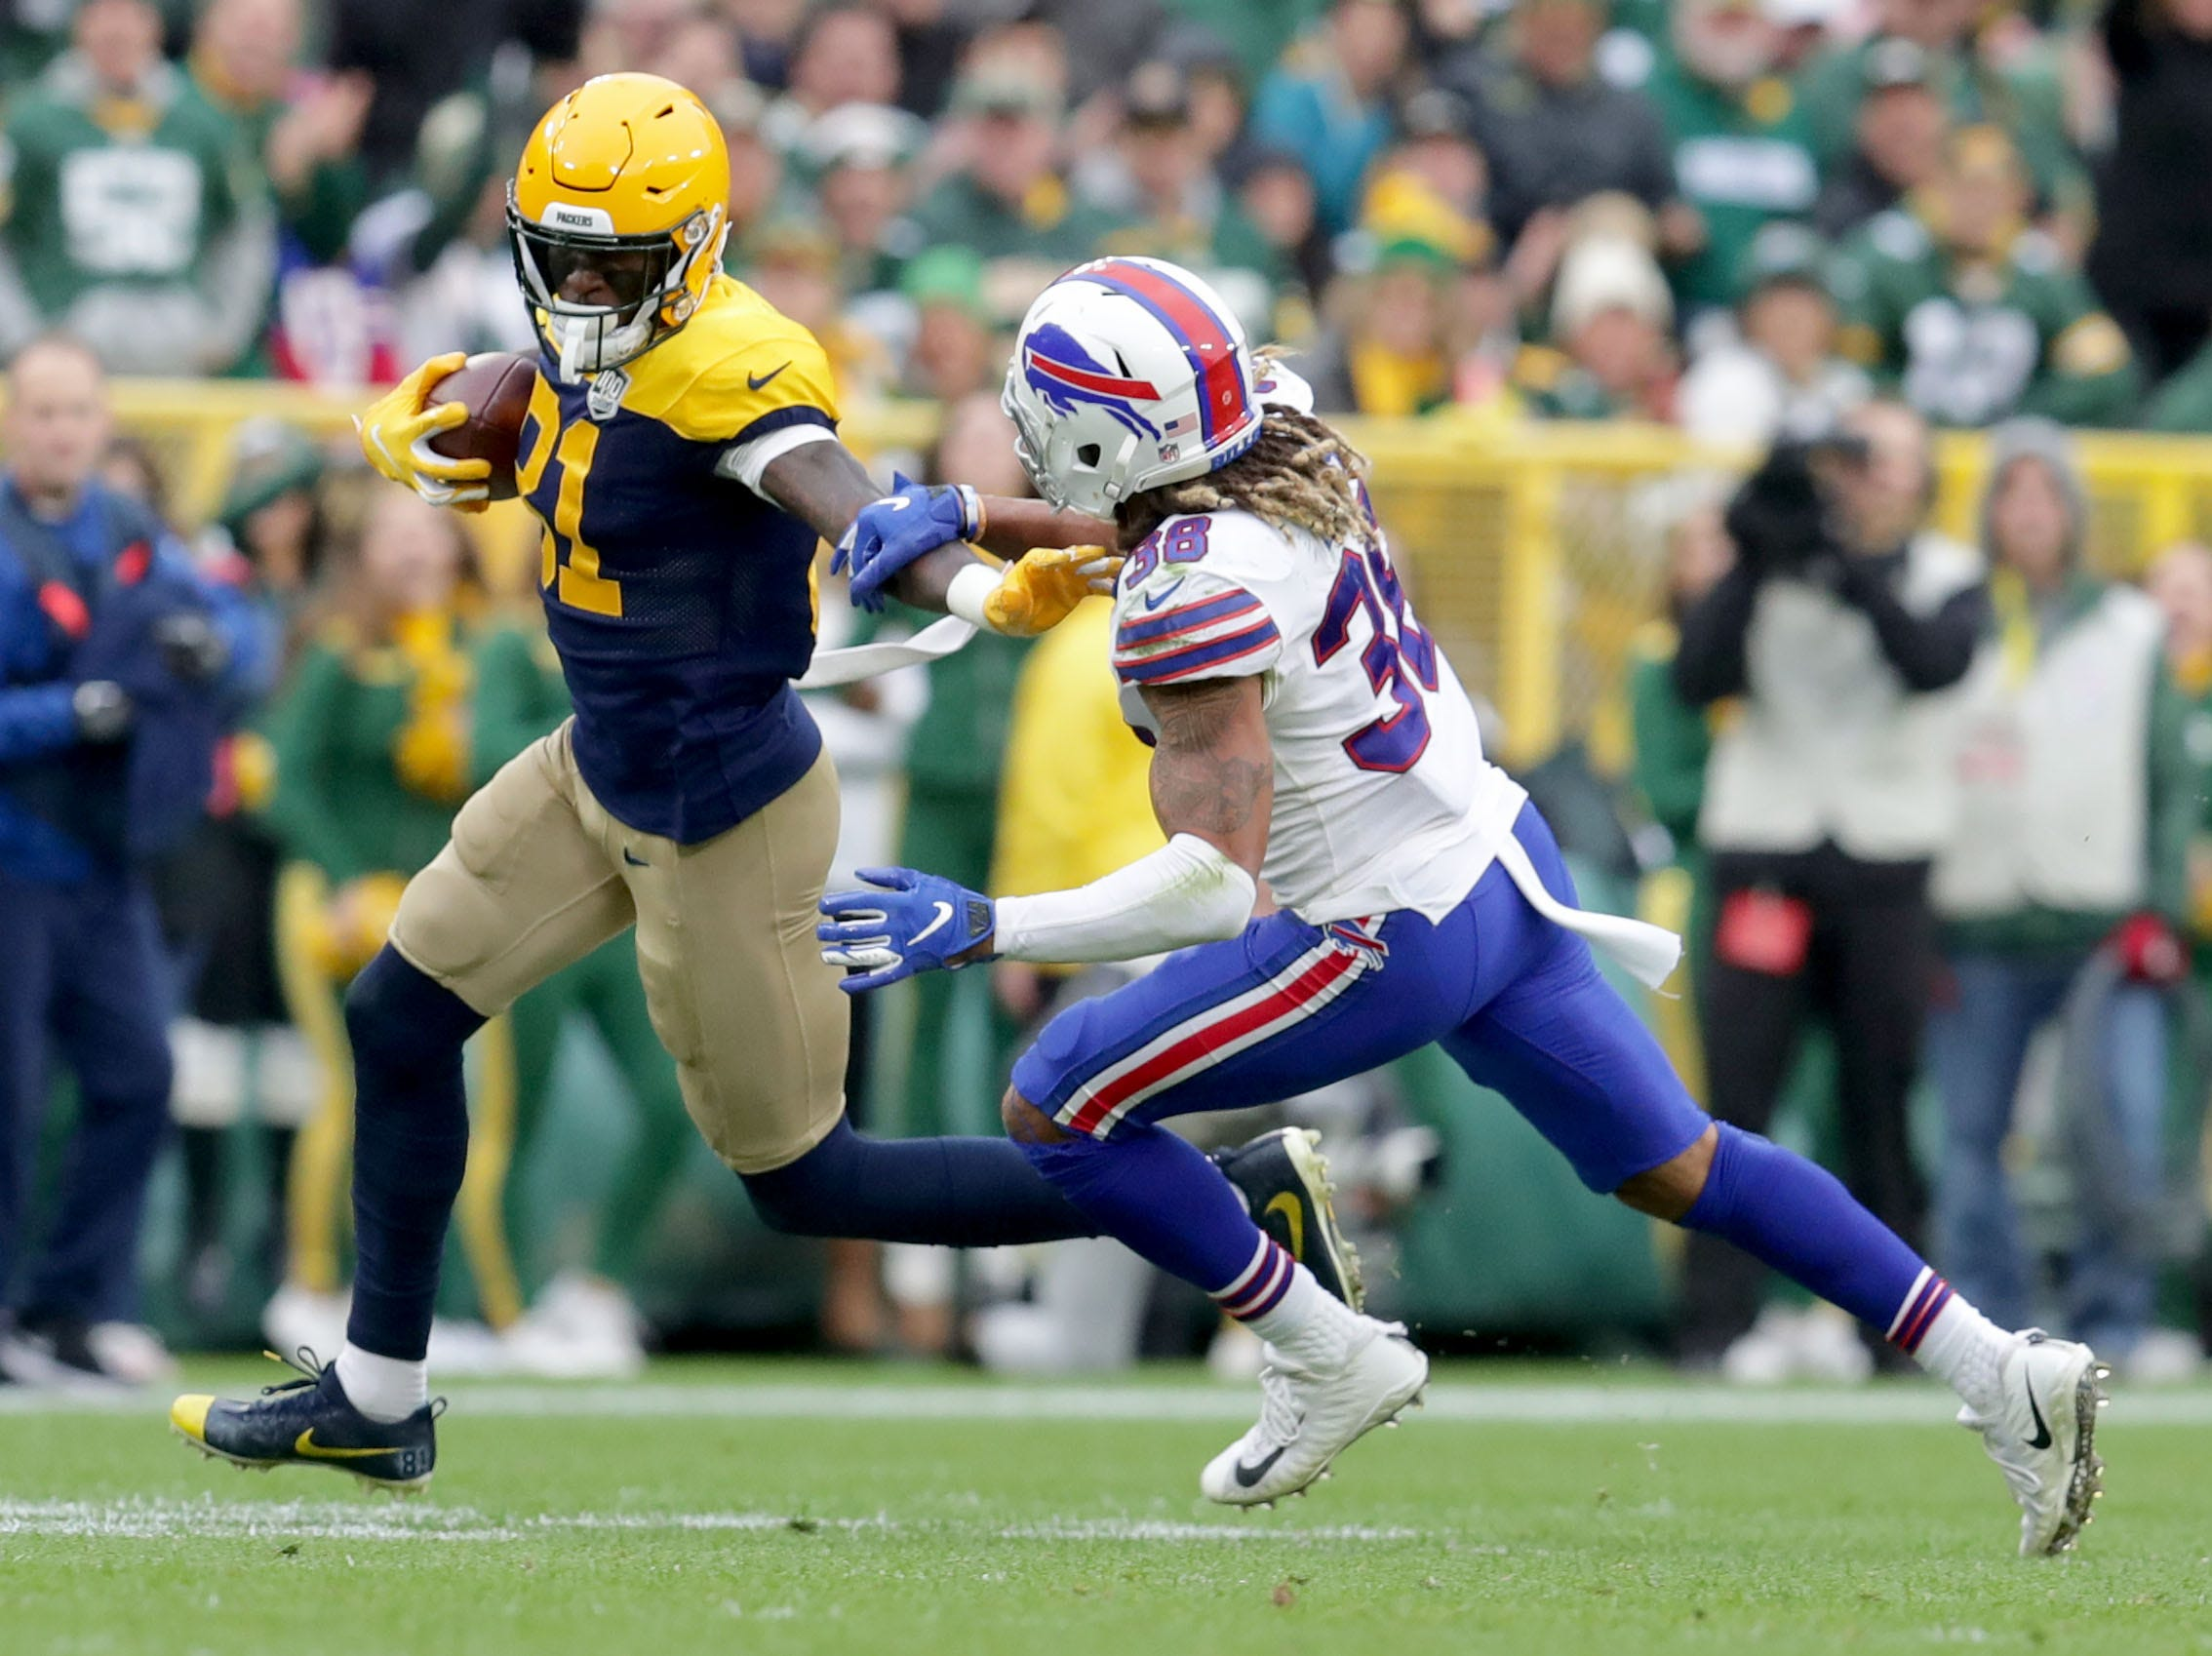 Green Bay Packers wide receiver Davante Adams (17) avoids a tackle by Buffalo Bills defensive back Ryan Lewis (38) during the 3rd quarter of the Green Bay Packers 22-0 win against the Buffalo Bills at Lambeau Field in Green Bay, Wis. on Sunday, September 30, 2018. Mike De Sisti /USA TODAY NETWORK-Wisconsin